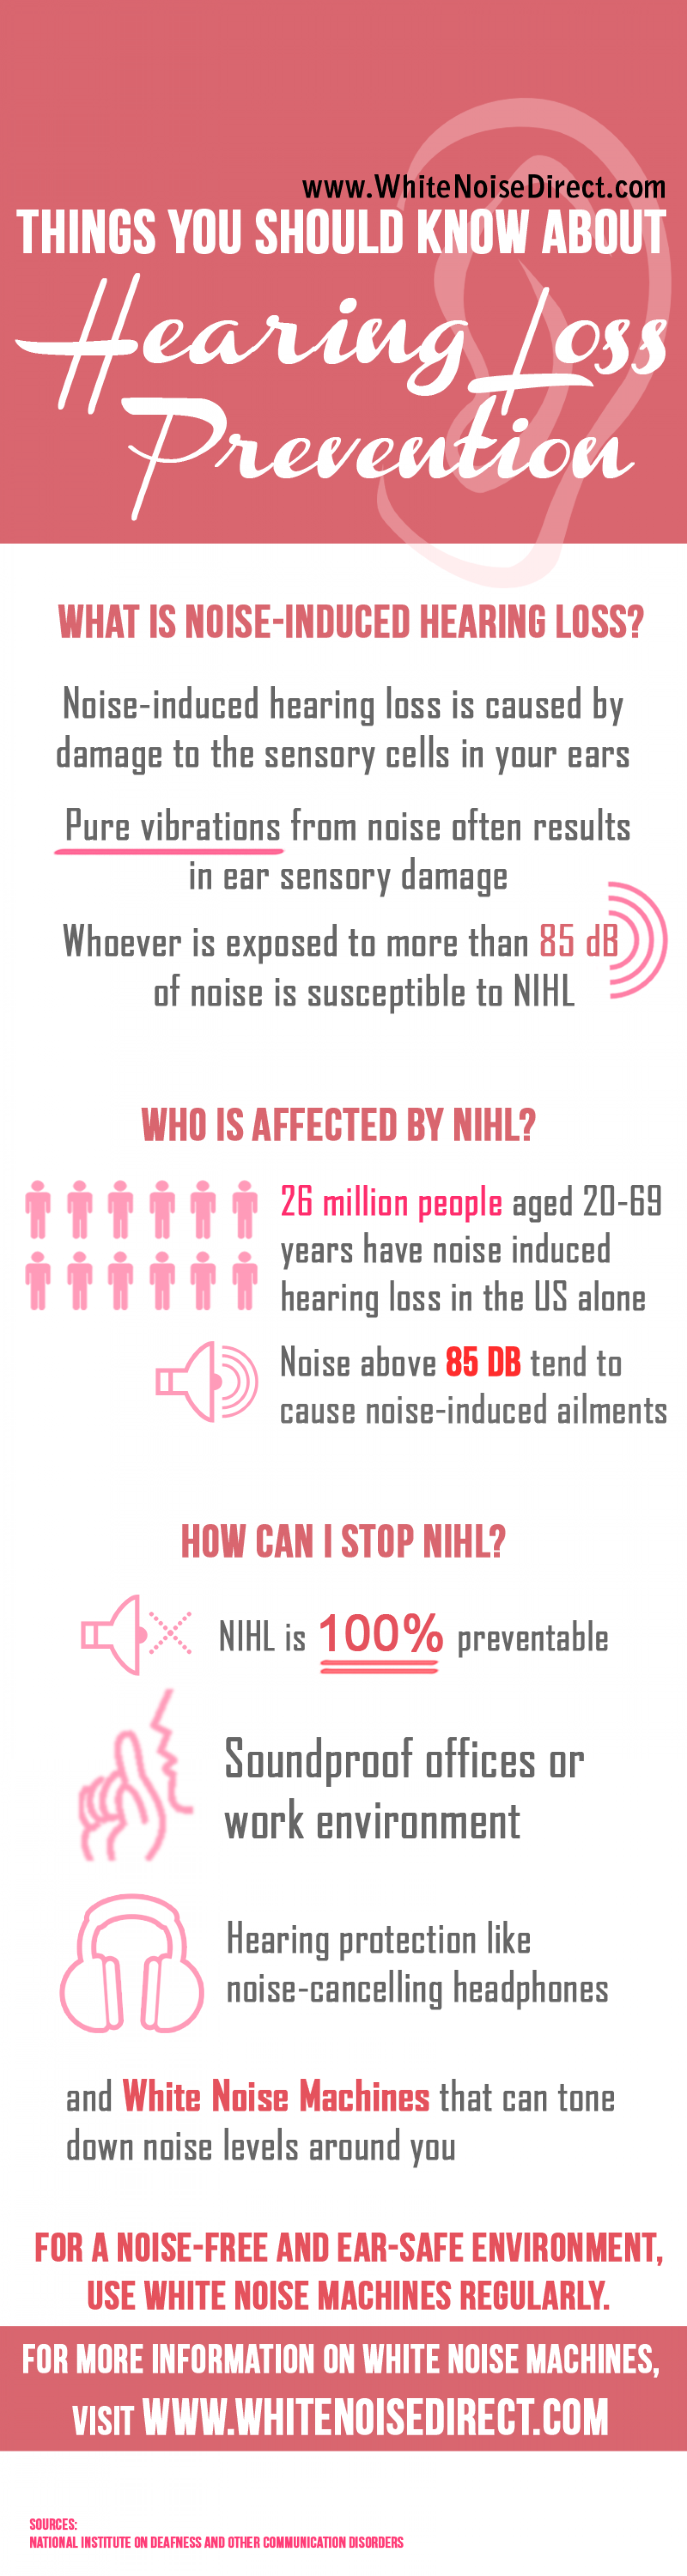 Things You Should Know About Hearing Loss Prevention Infographic